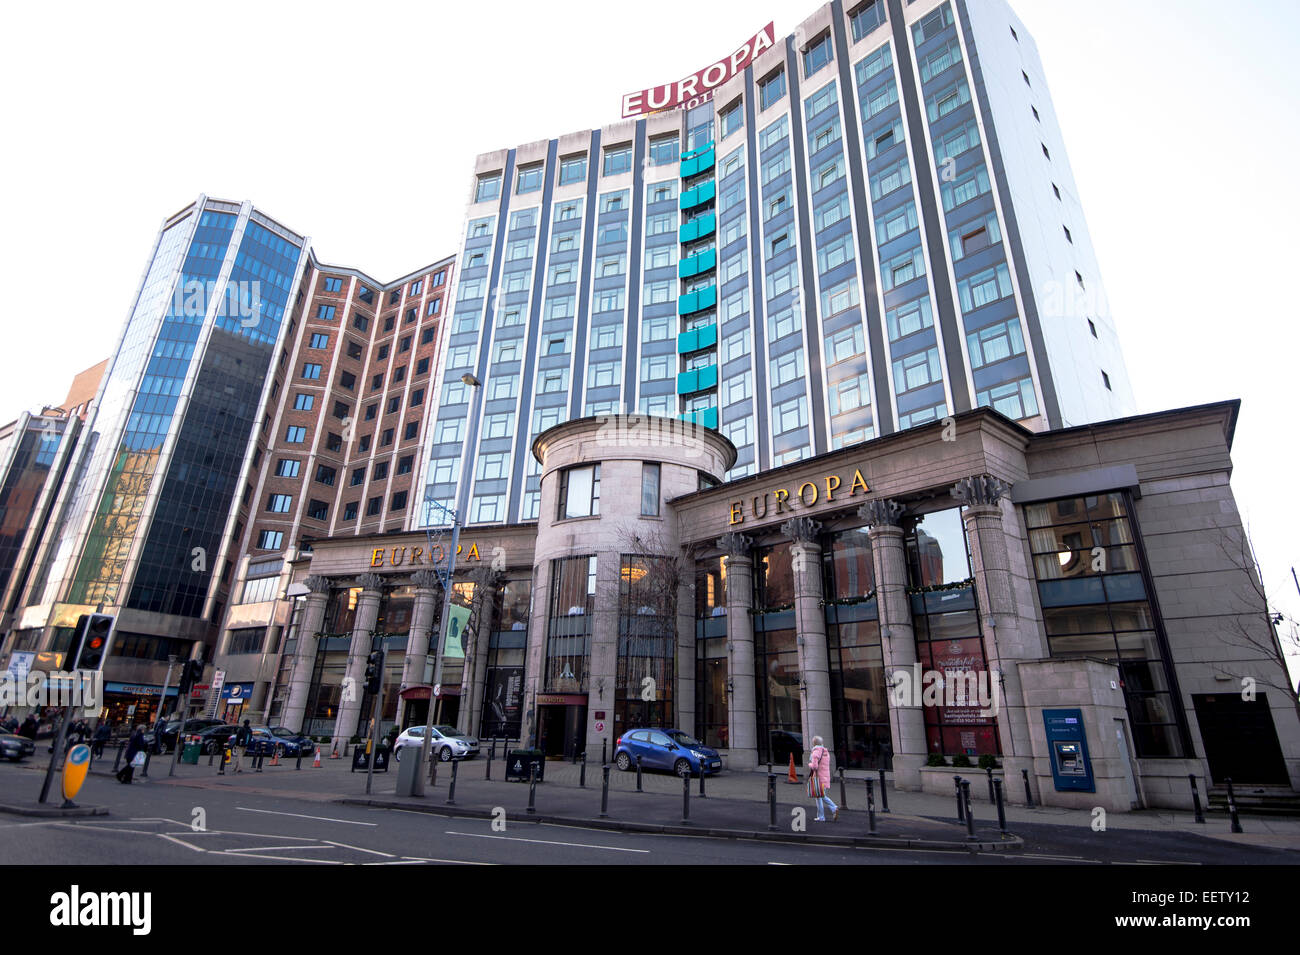 The hotel Euopa which is the most bombed hotel in Europe suffering 28 bomb attacks during the troubles, Belfast - Stock Image